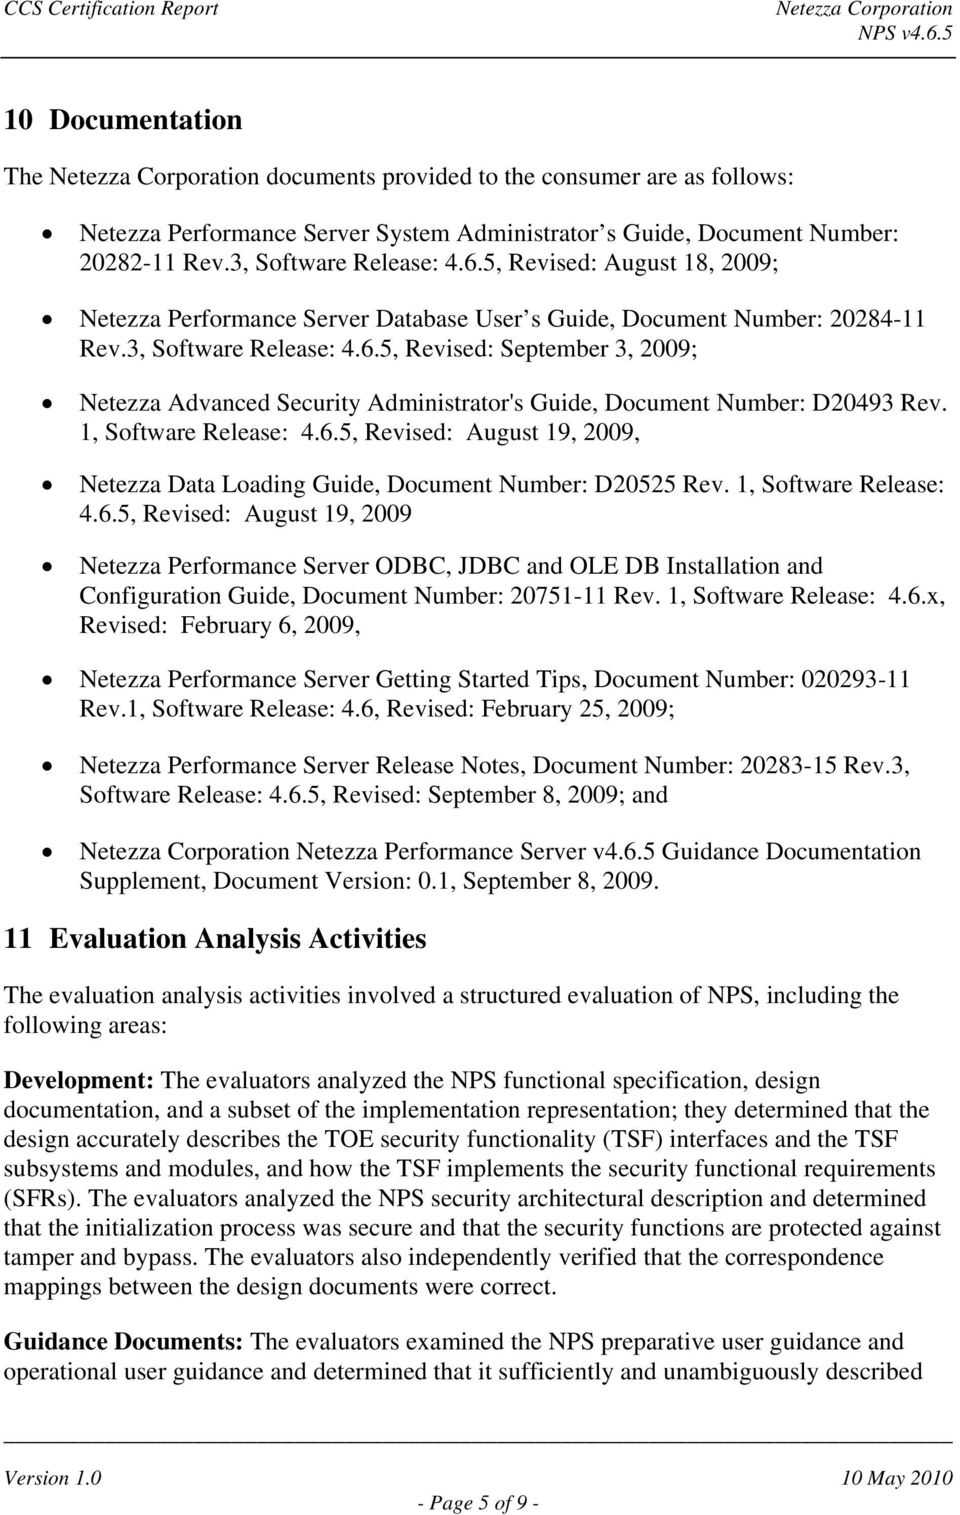 5, Revised: September 3, 2009; Netezza Advanced Security Administrator's Guide, Document Number: D20493 Rev. 1, Software Release: 4.6.